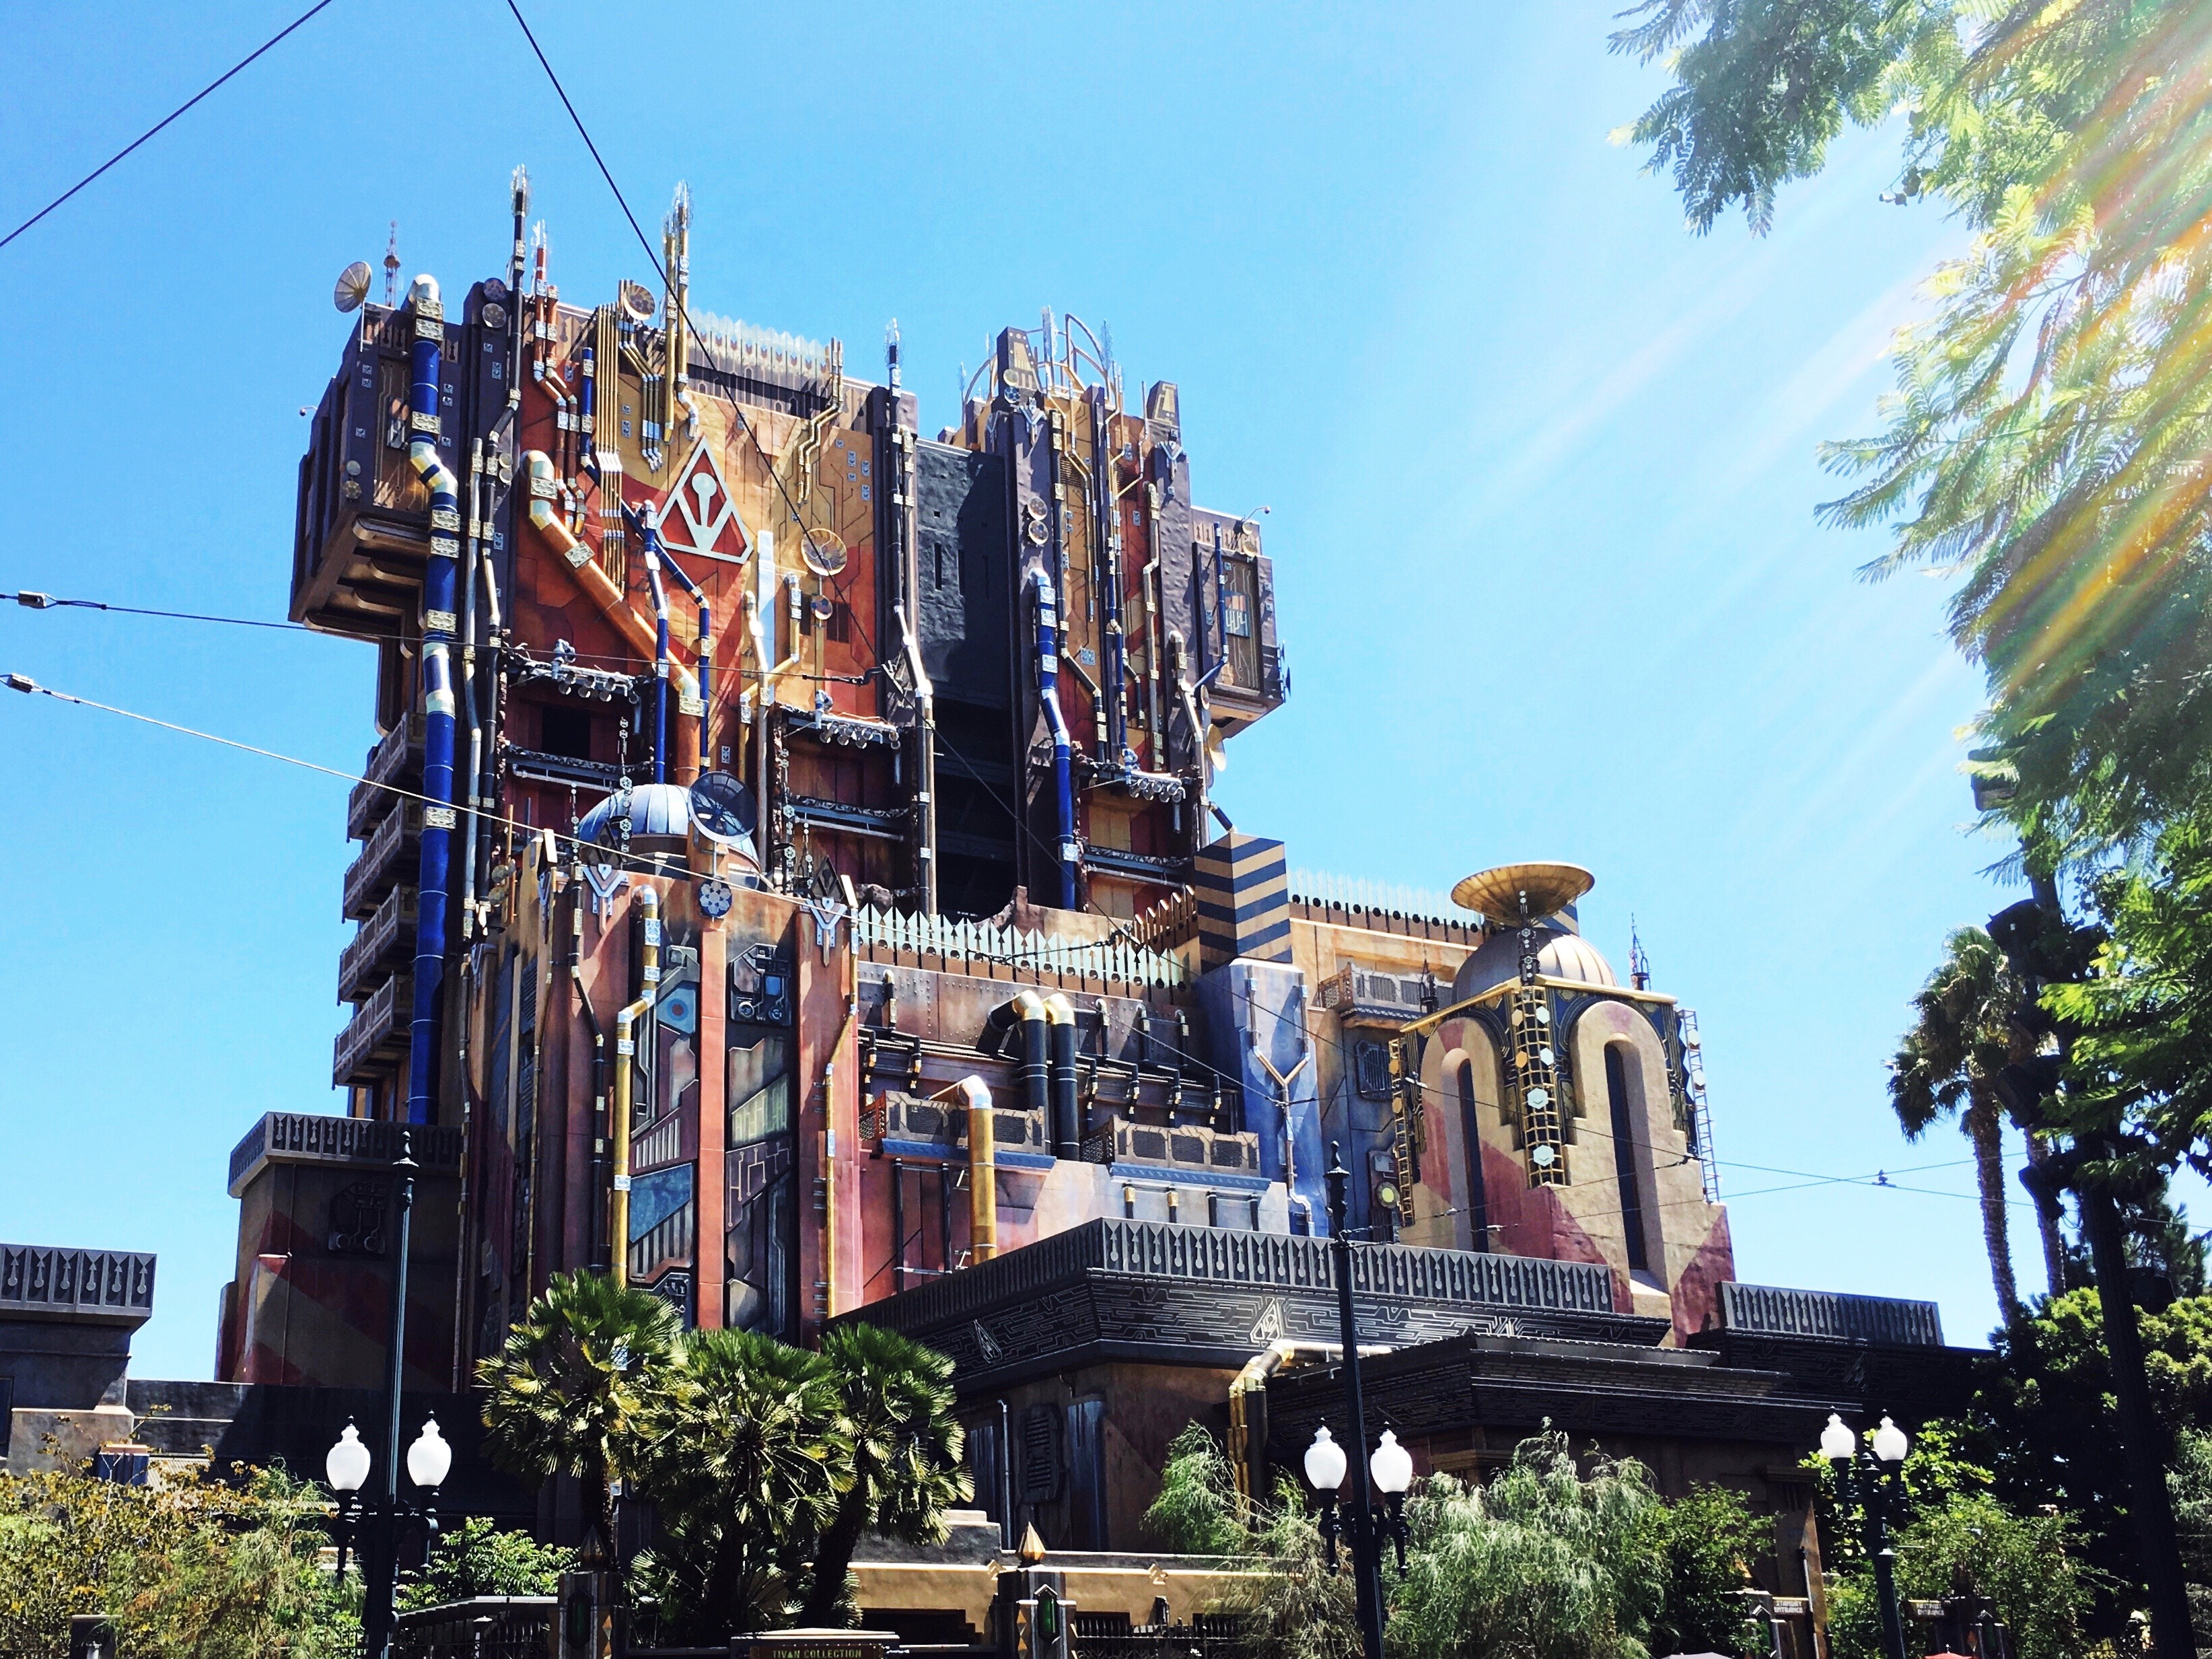 Guardians Of The Galaxy - Mission BREAKOUT - Simple Sojourns